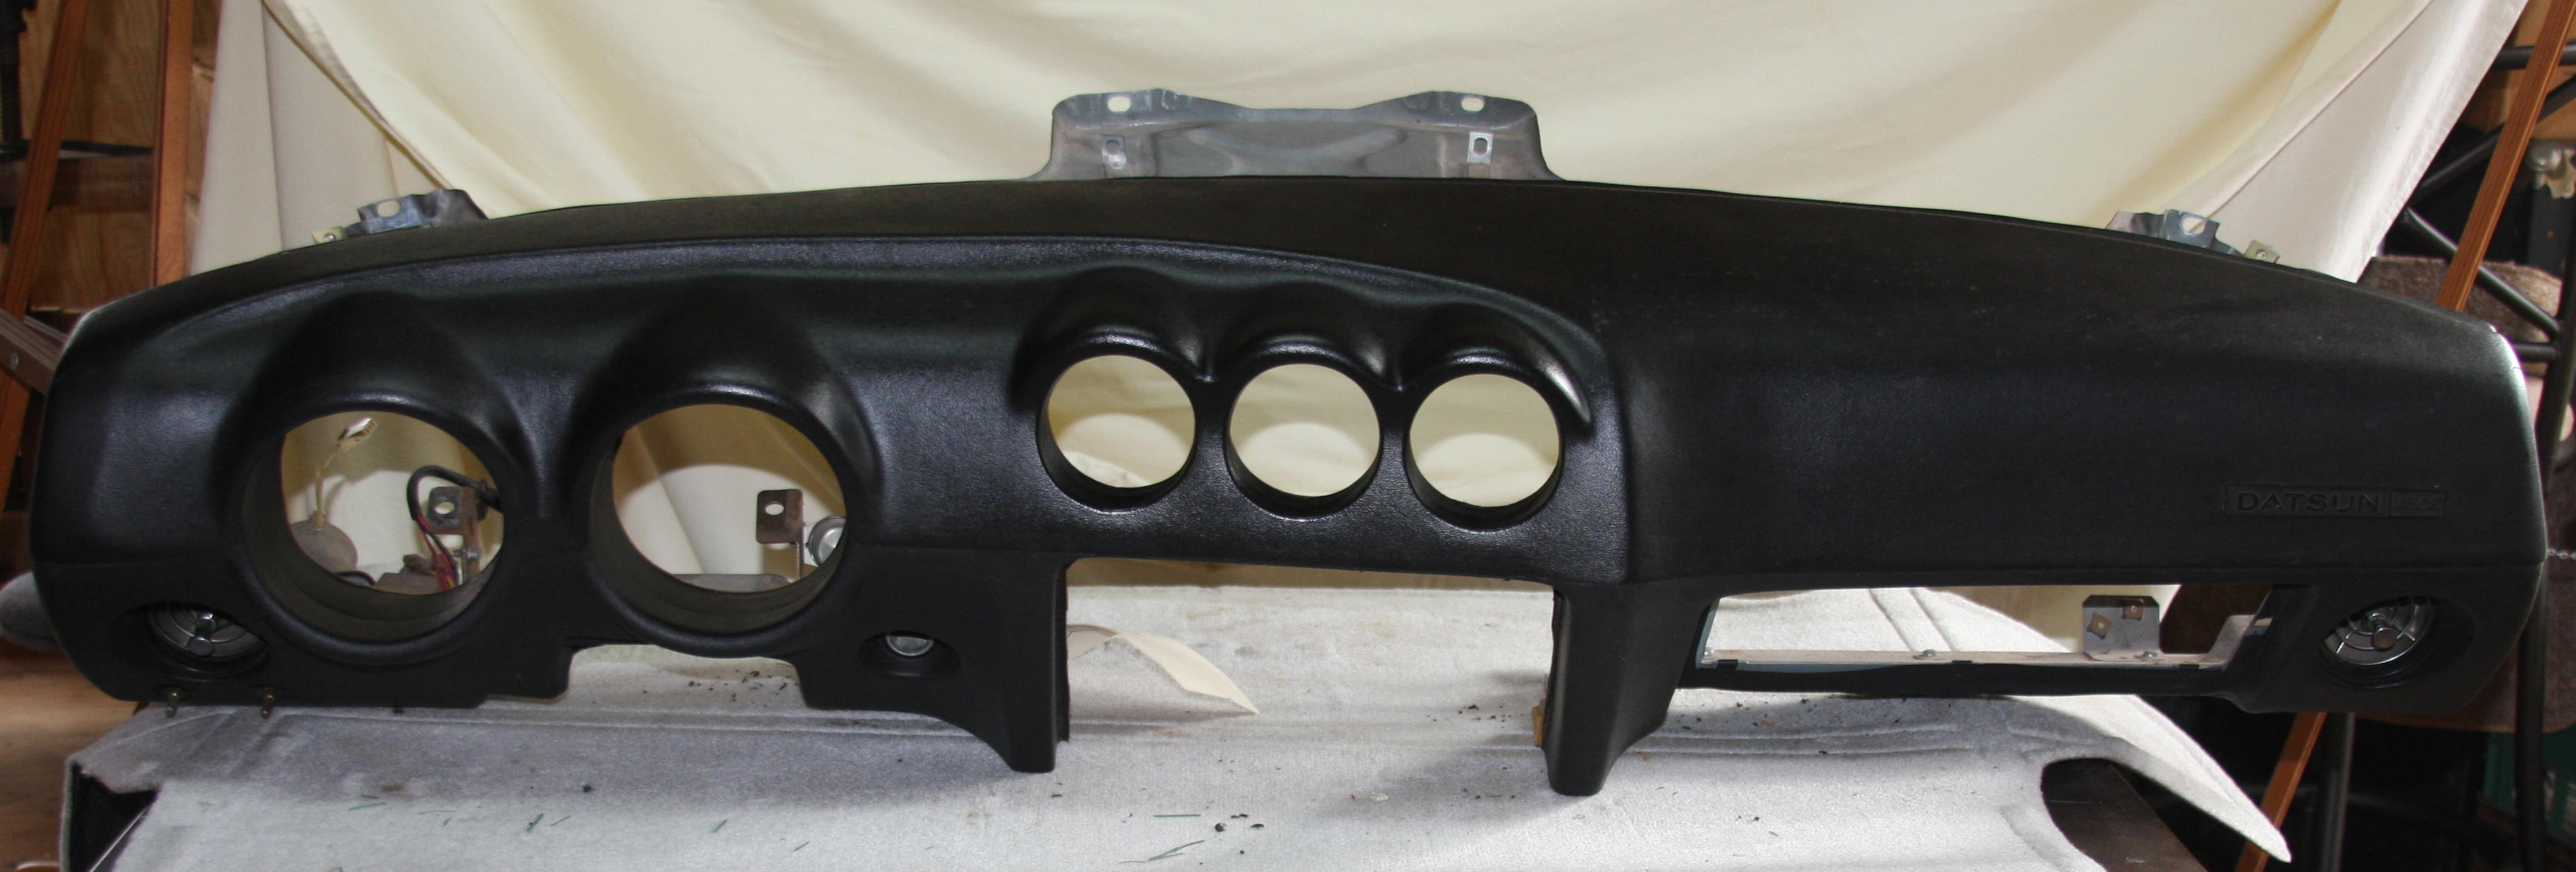 280z Dash and frame